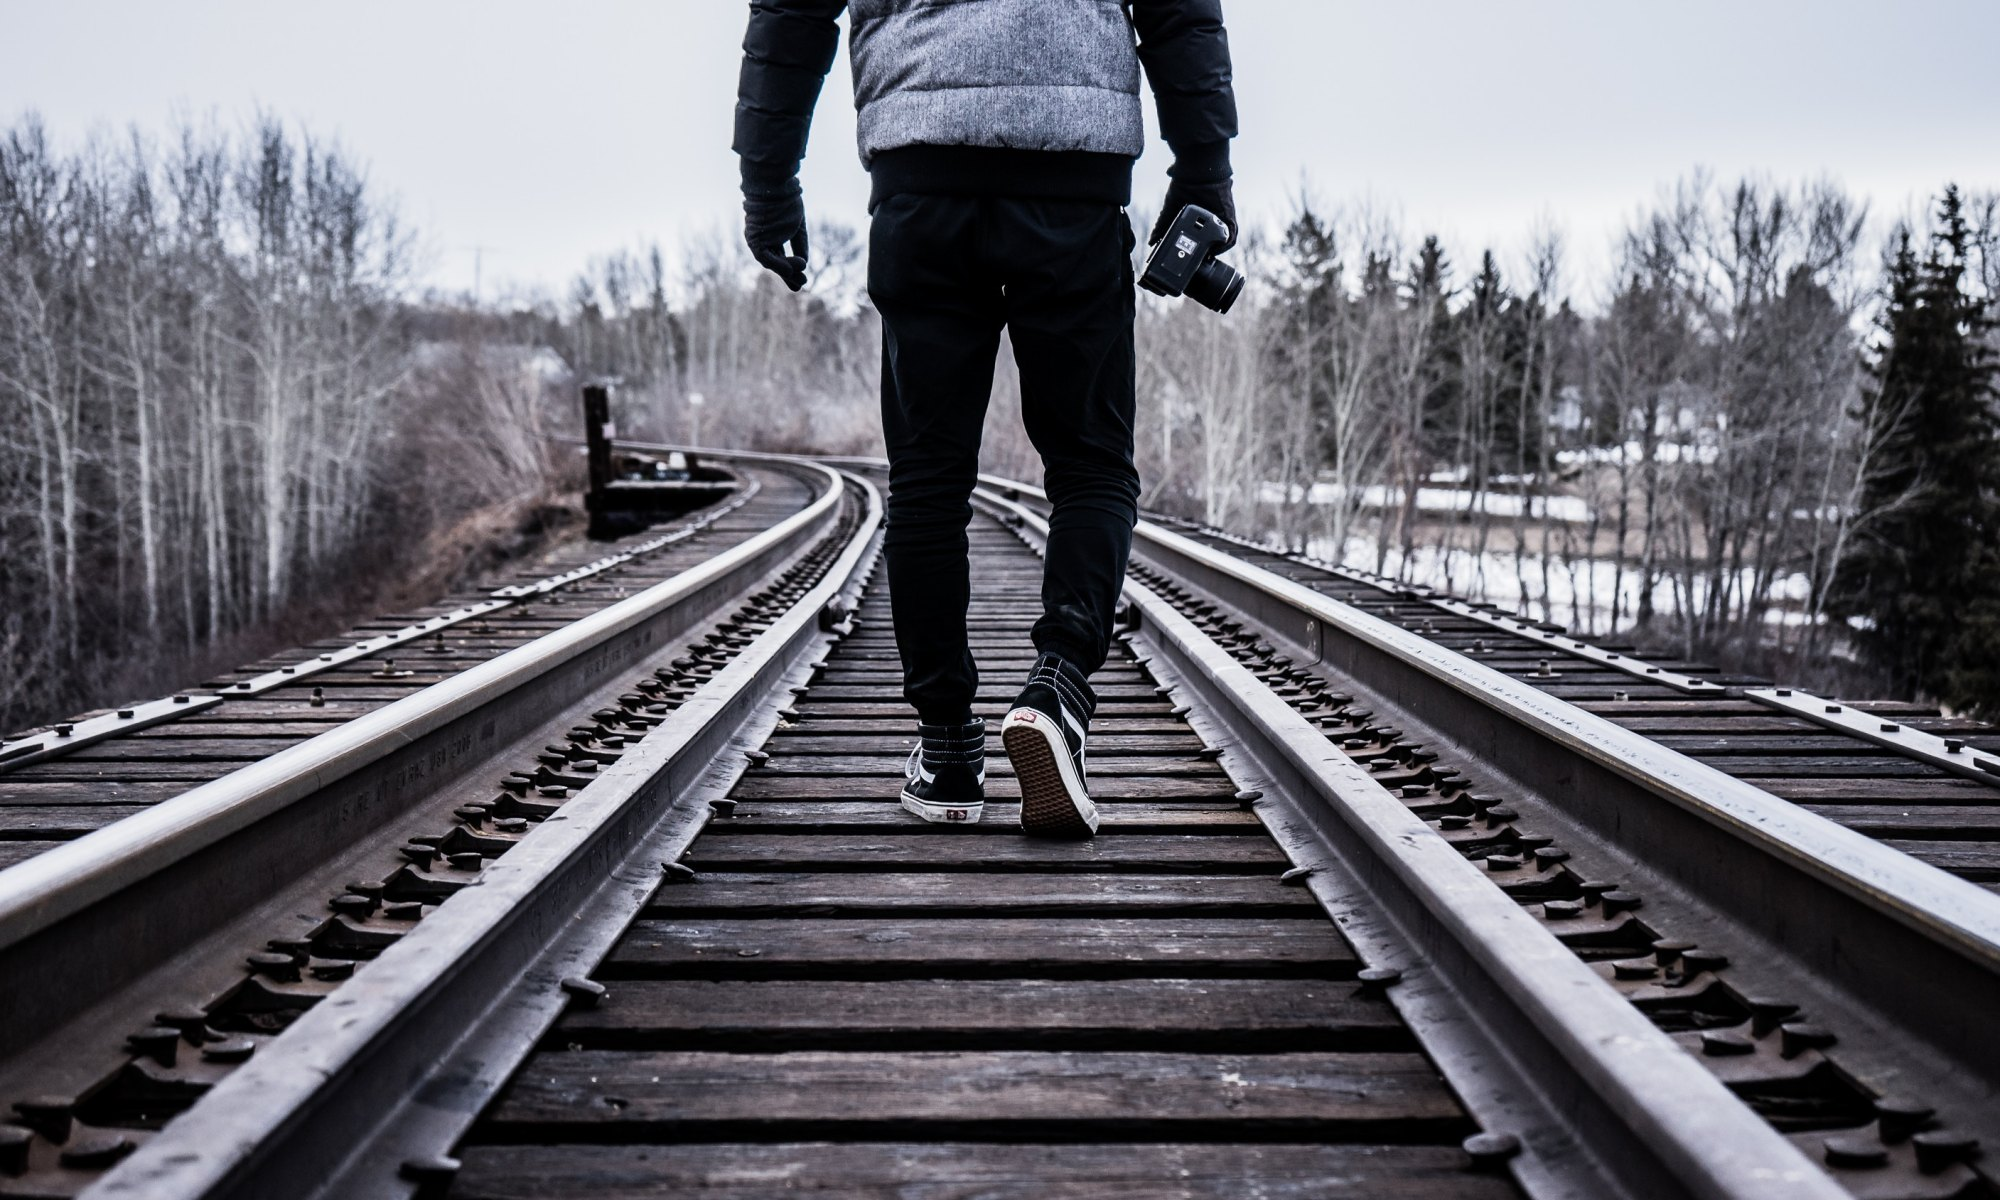 A courageous man holding a camera walking on a train track during winter